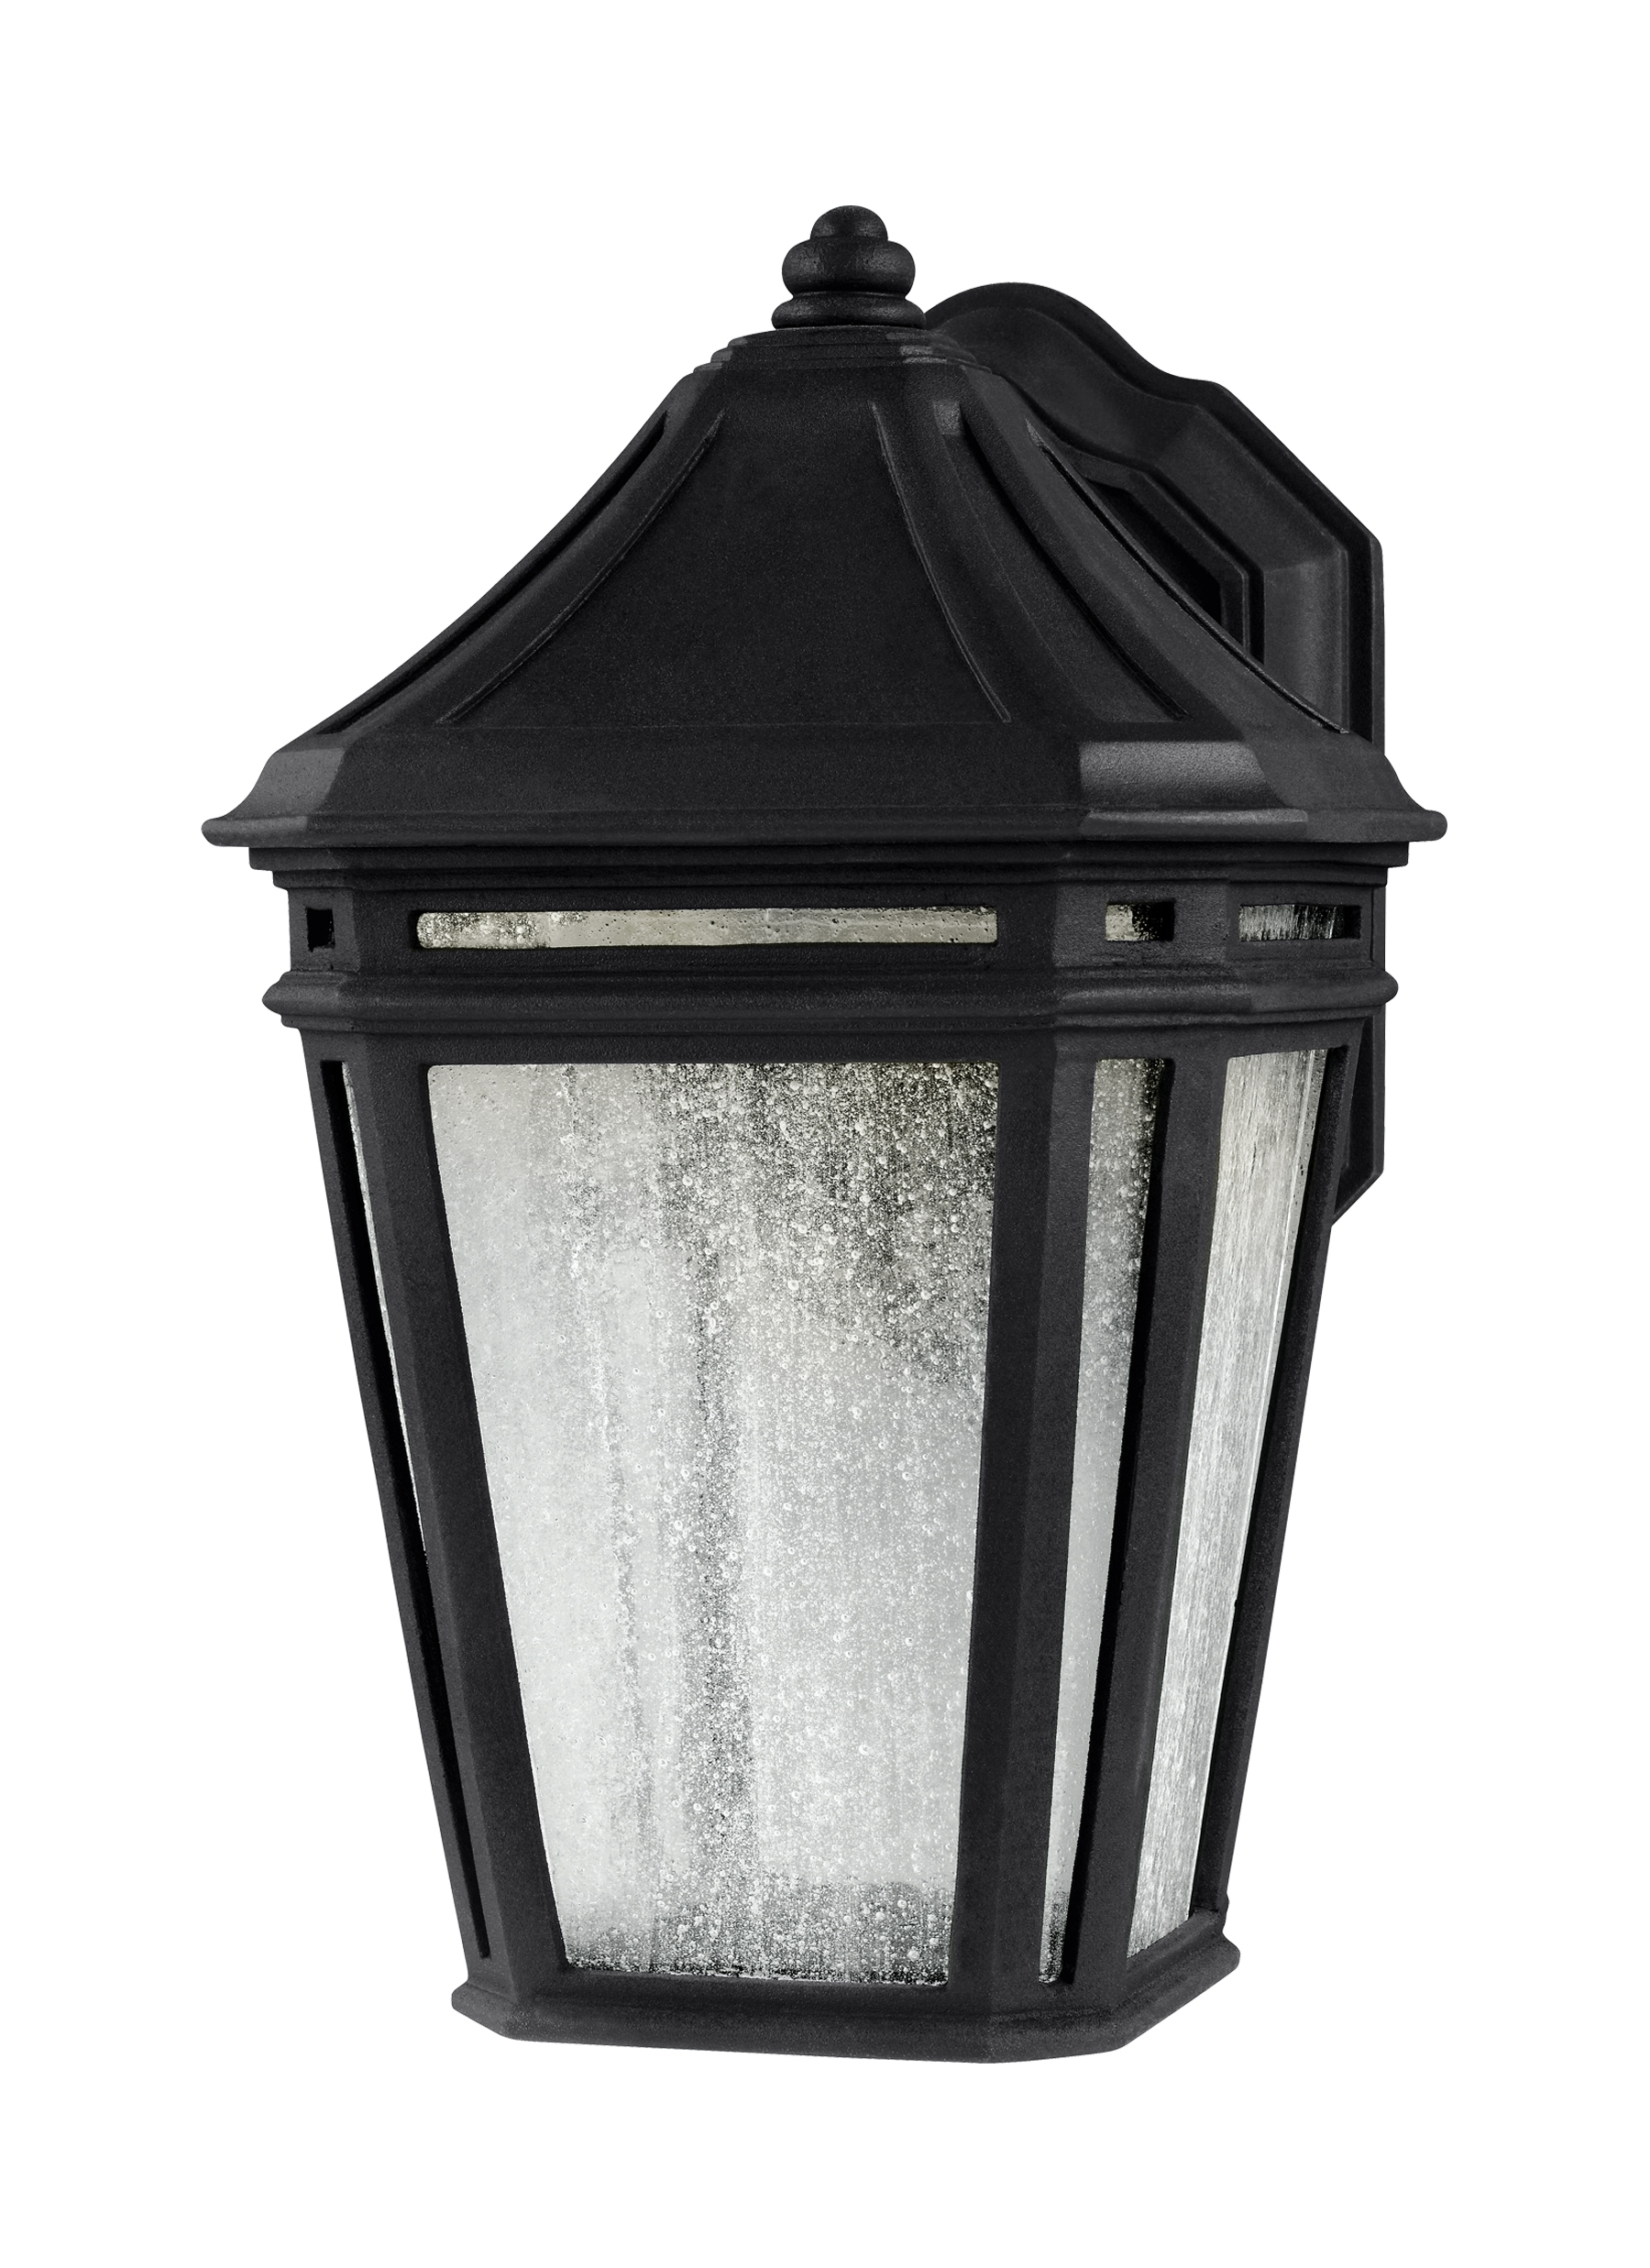 Led Outdoor Lanterns For Well Known Ol11302Bk Led,led Outdoor Sconce,black (View 7 of 20)